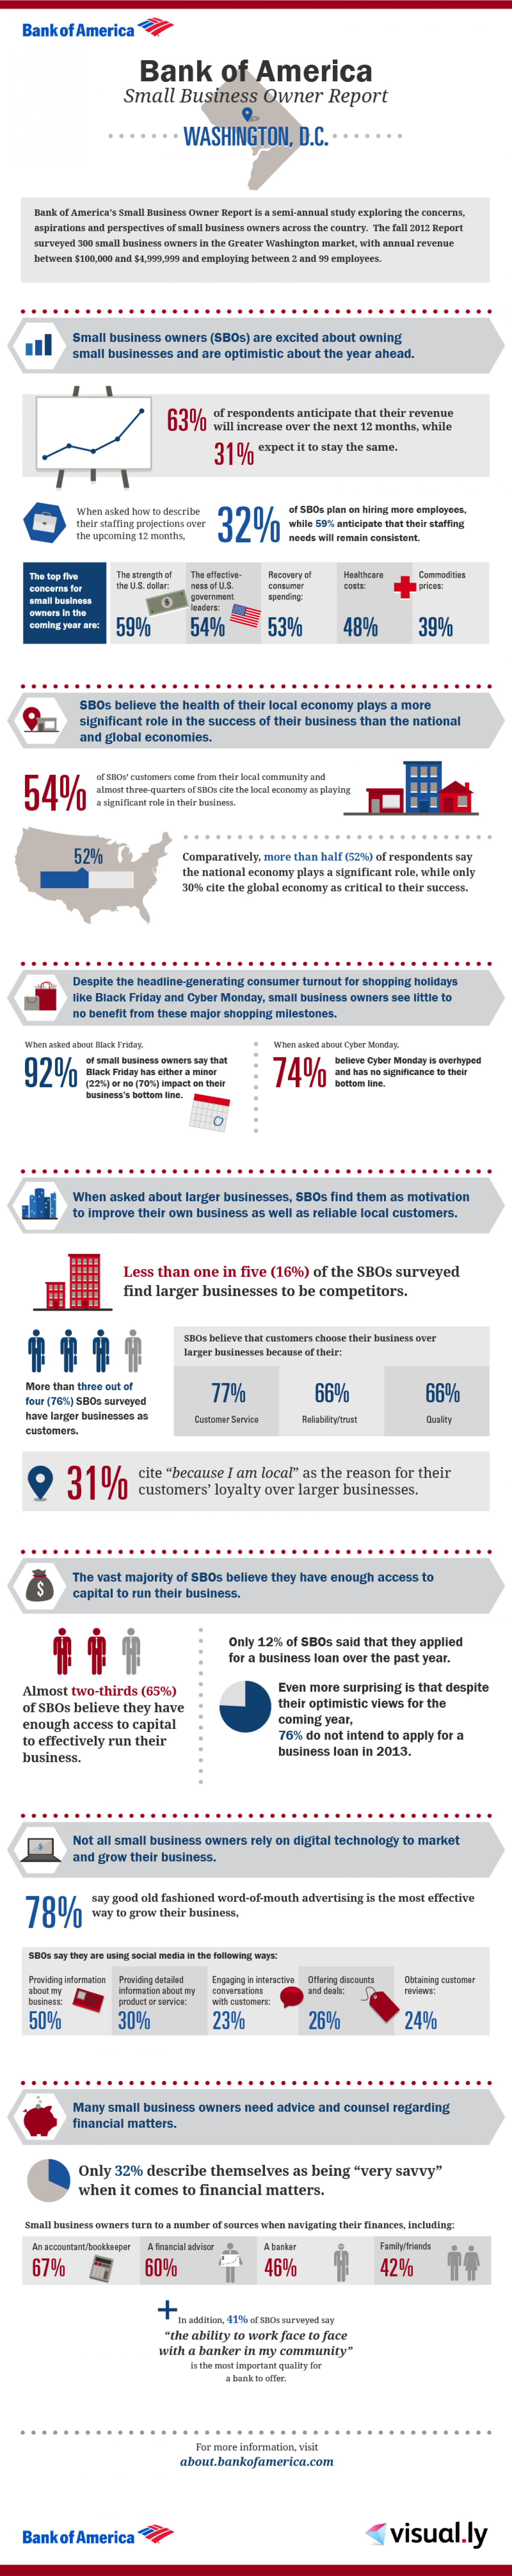 Bank of America Small Business Owner Report: Washington D.C. Local Breakdown Infographic